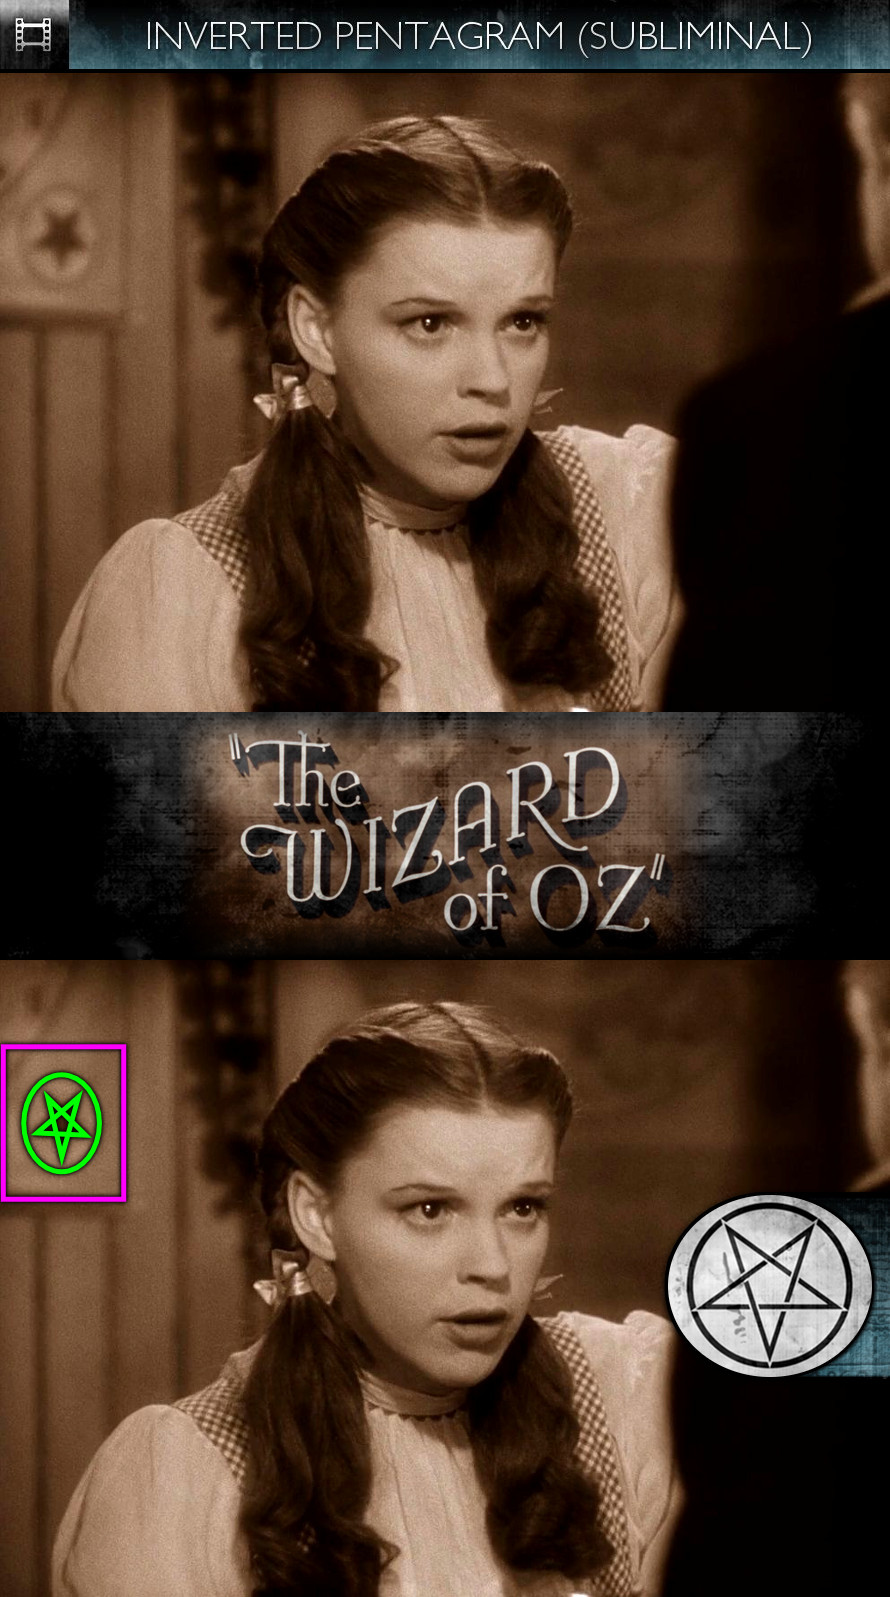 The Wizard of Oz (1939) - Inverted Pentagram - Subliminal